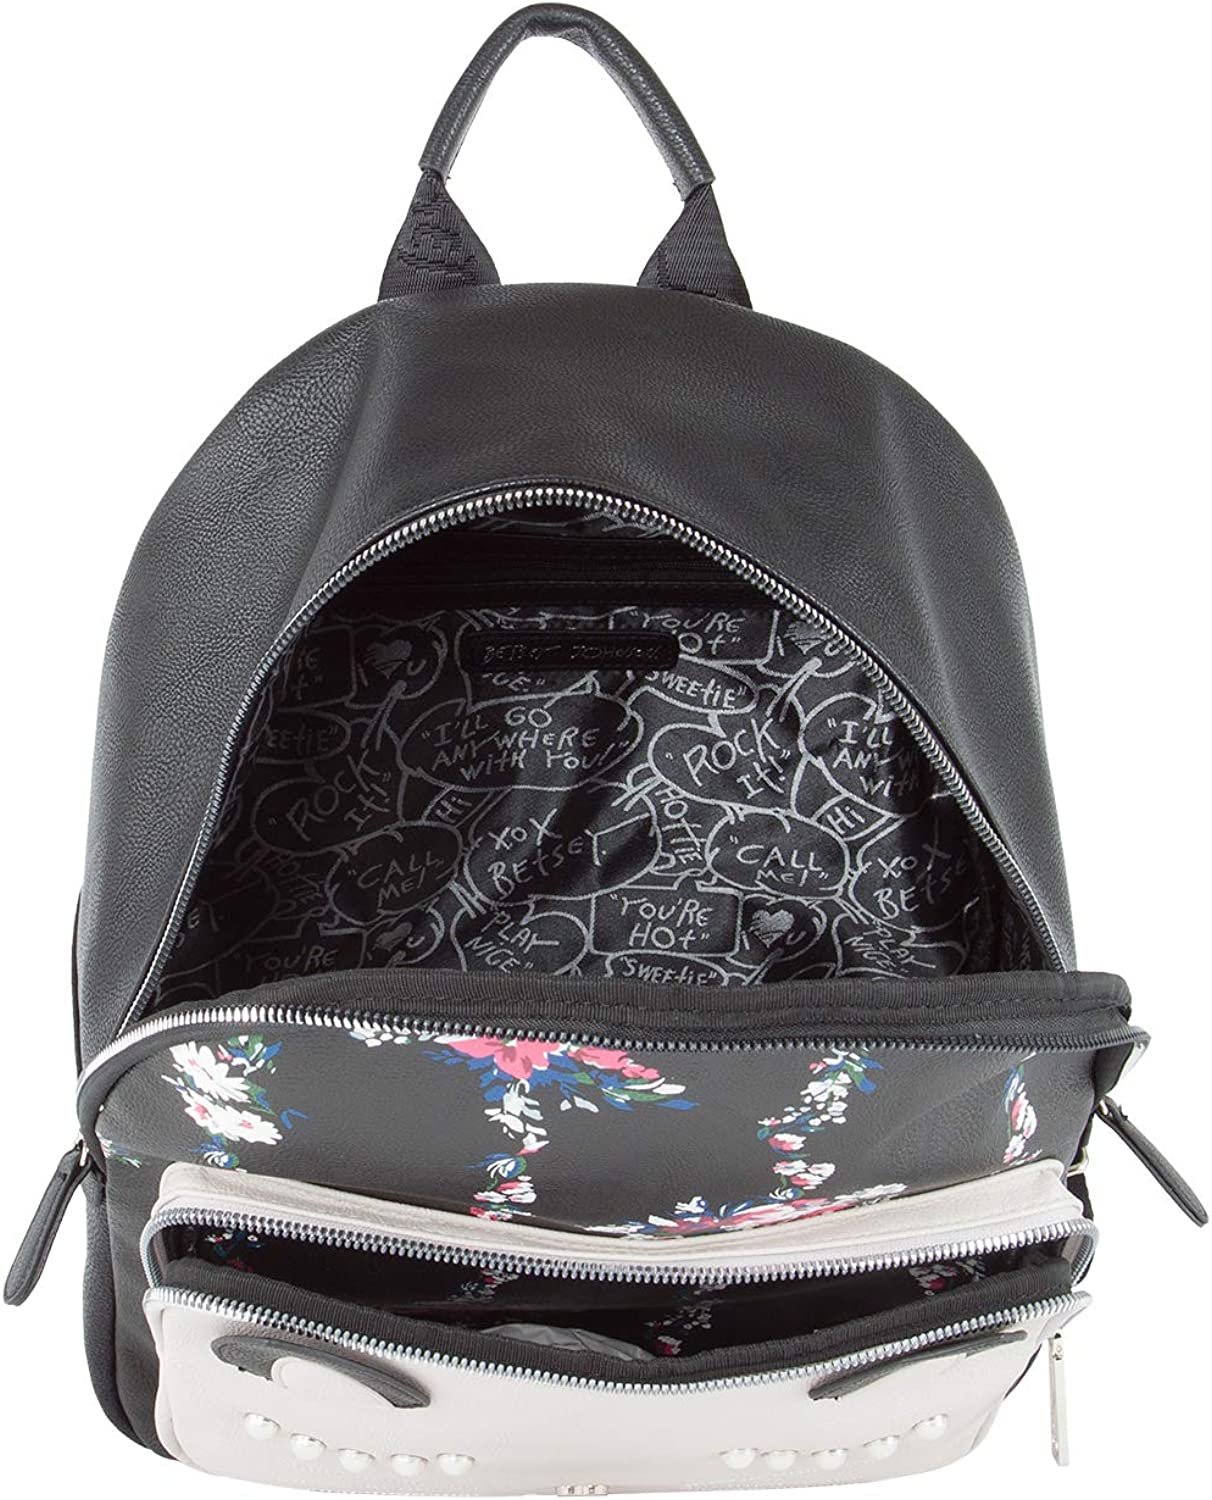 Betsey Johnson Papparazzi Backpack